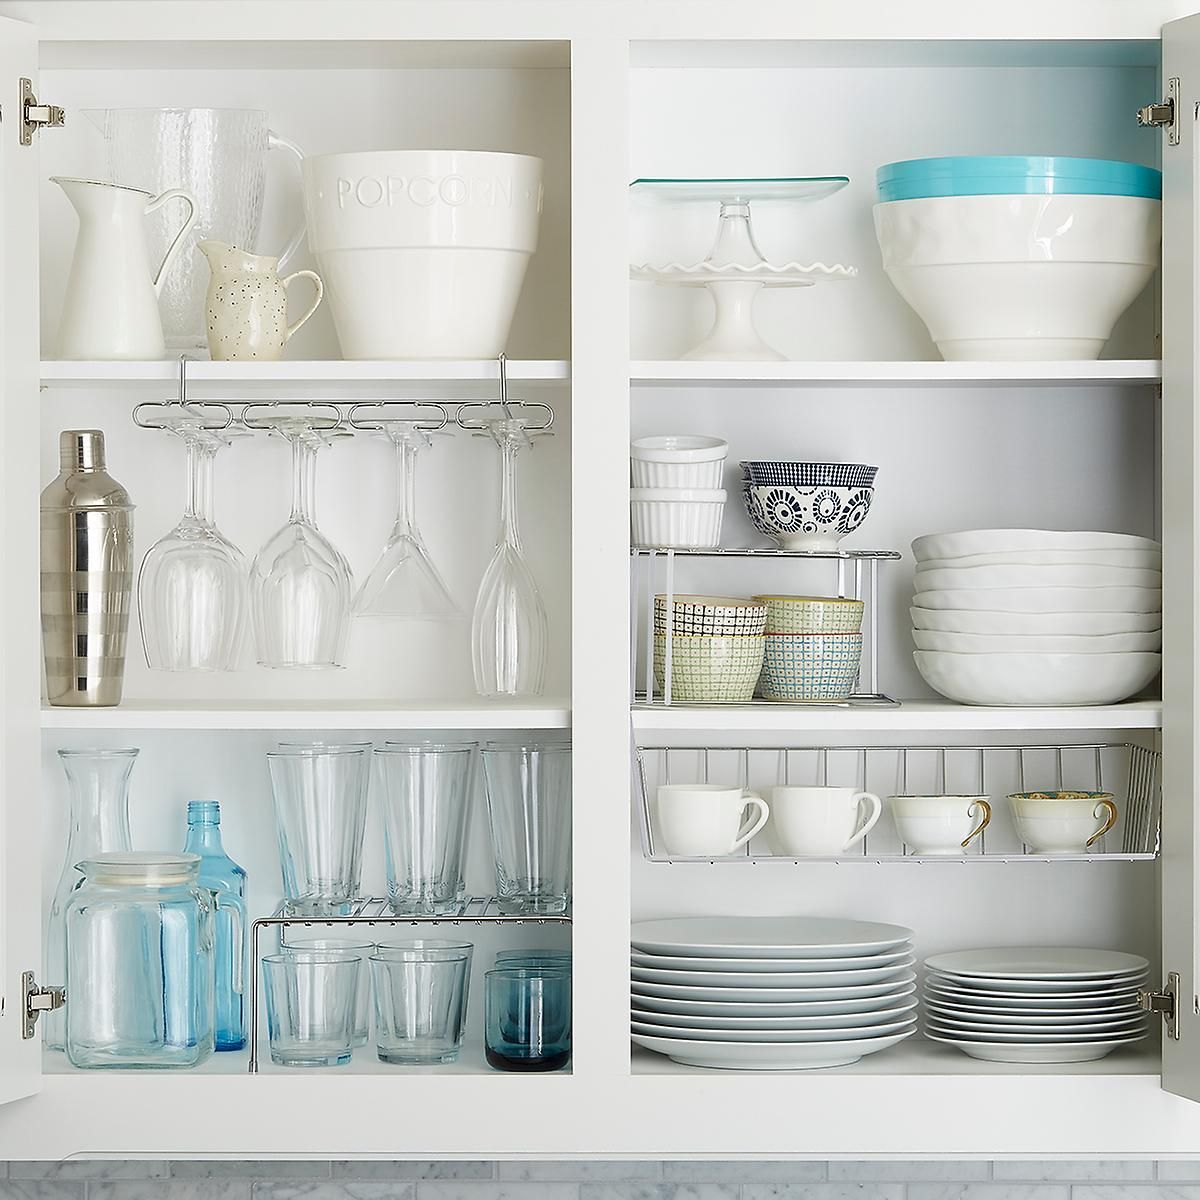 Upper Cabinet Organization Starter Kit The Container Store Glass Kitchen Cabinets Upper Cabinets Upper Kitchen Cabinets